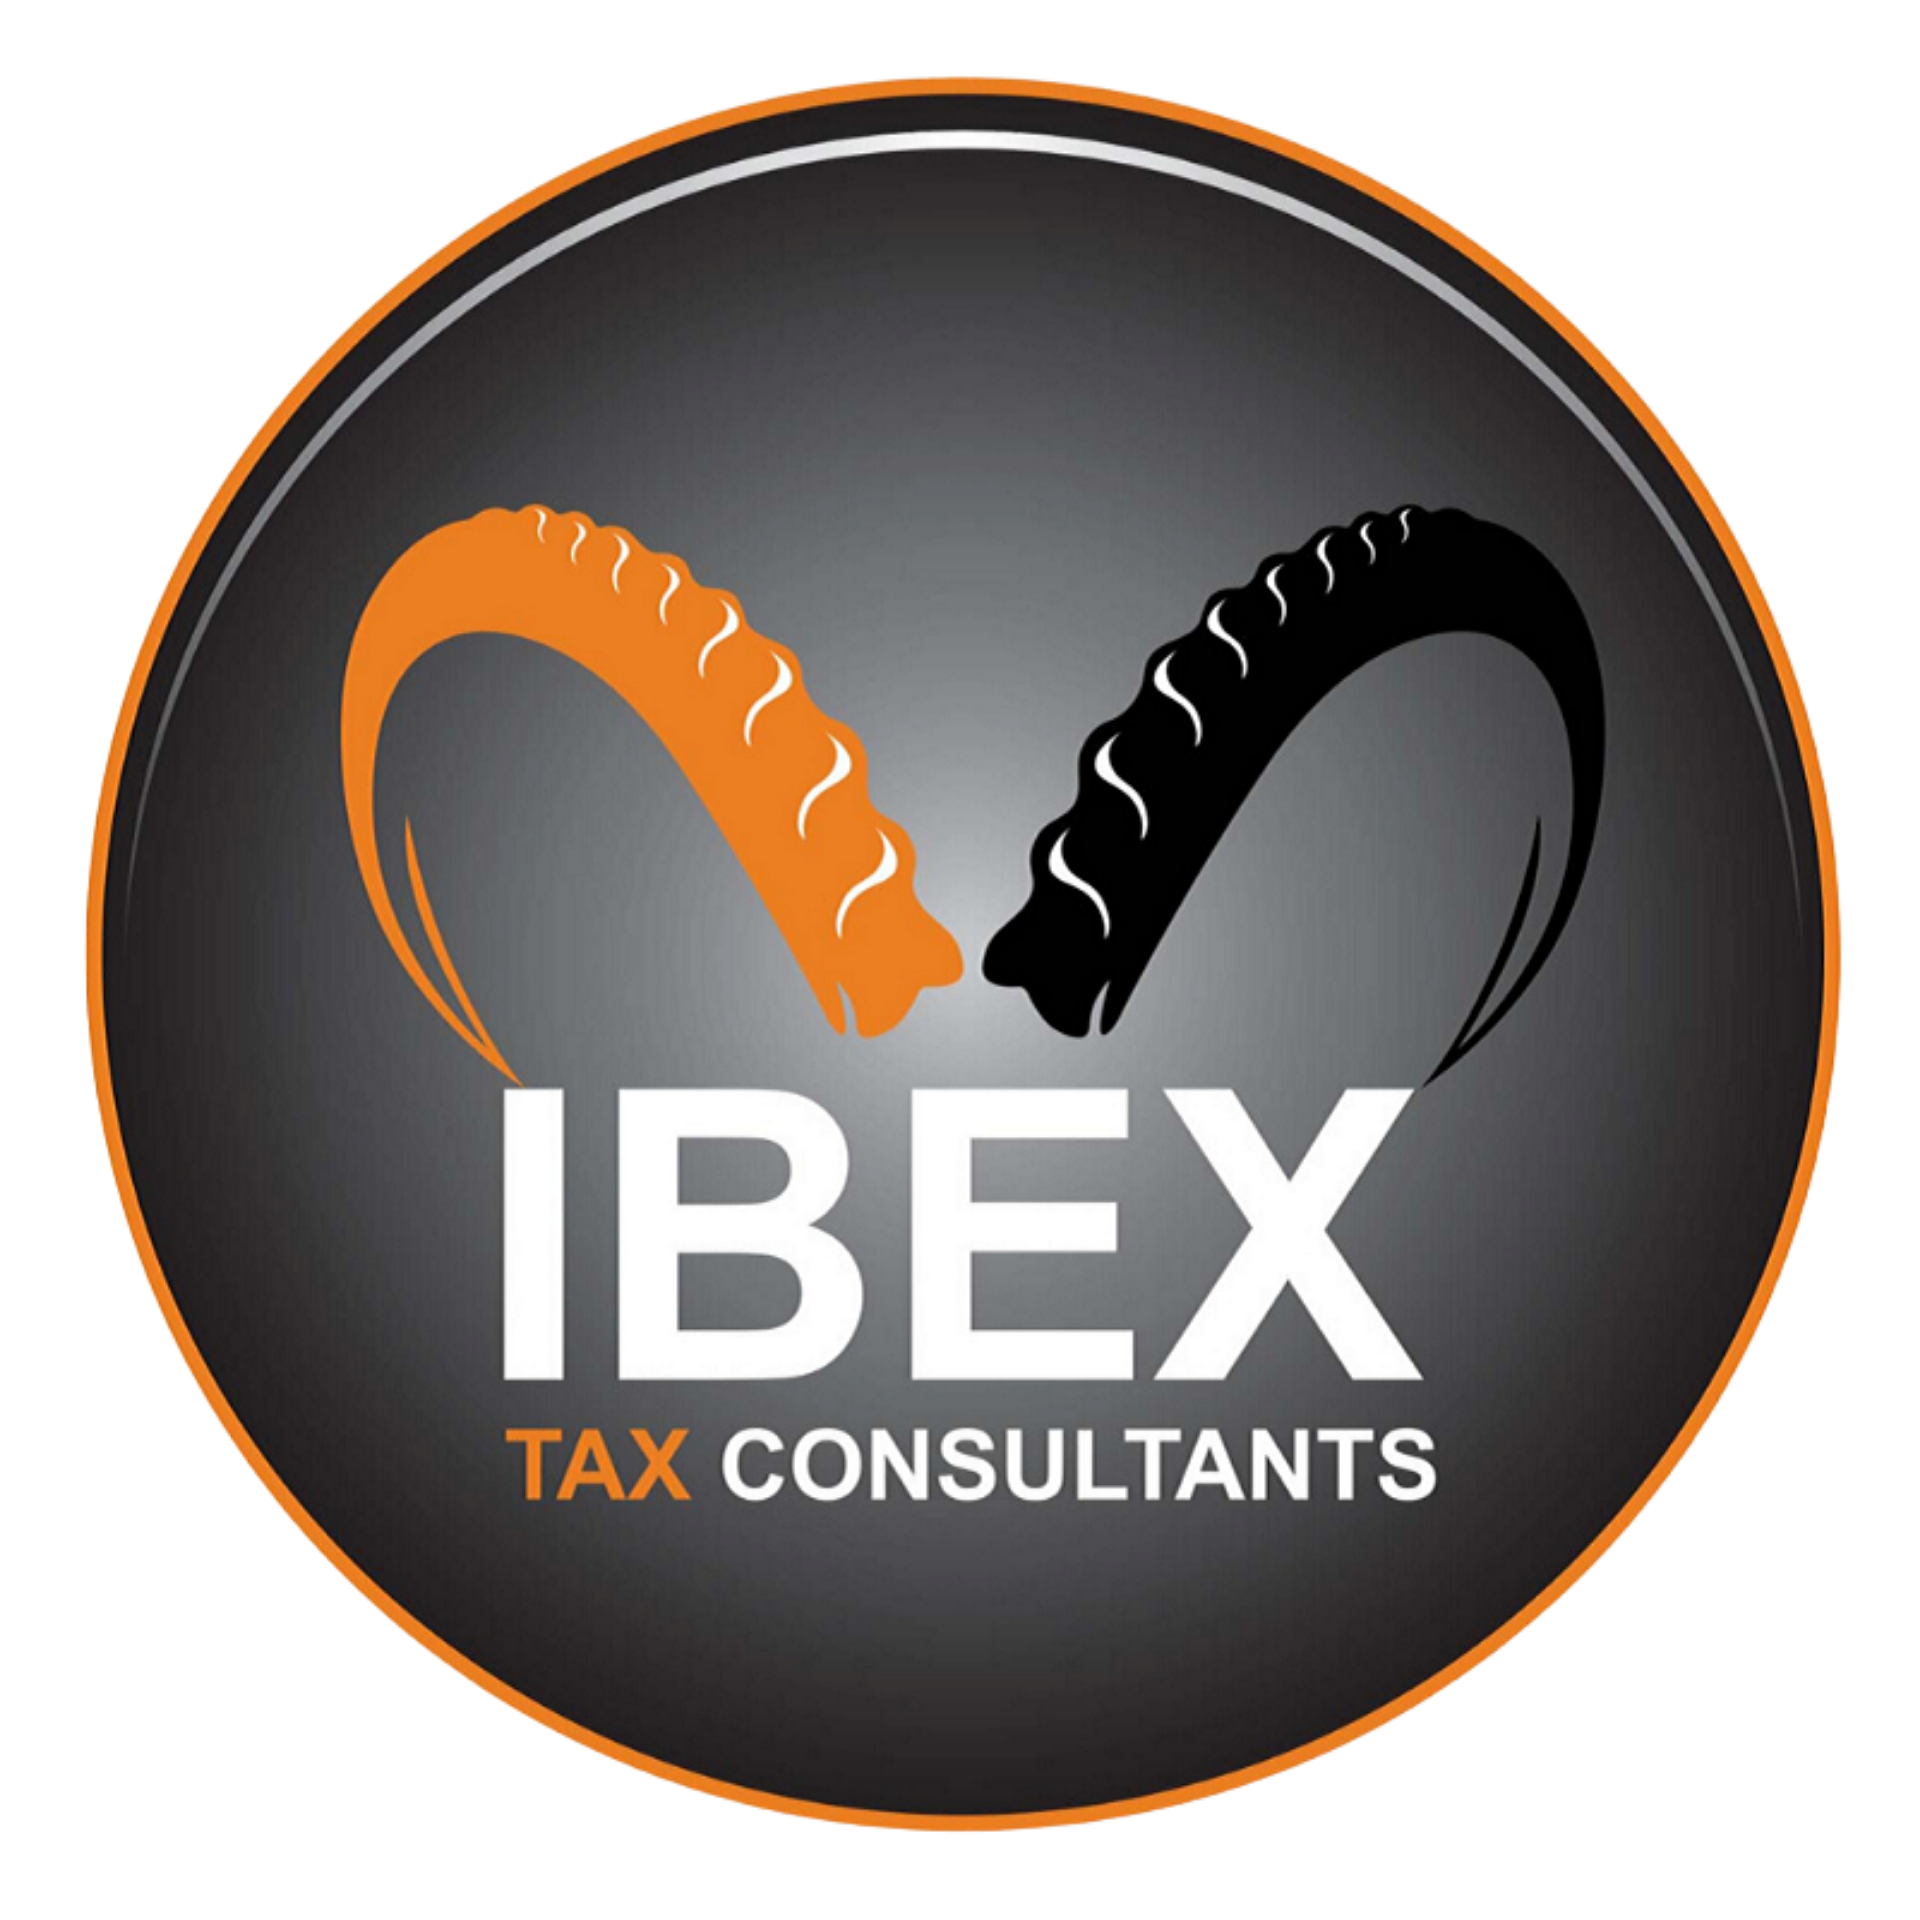 Ibex Tax Consultants